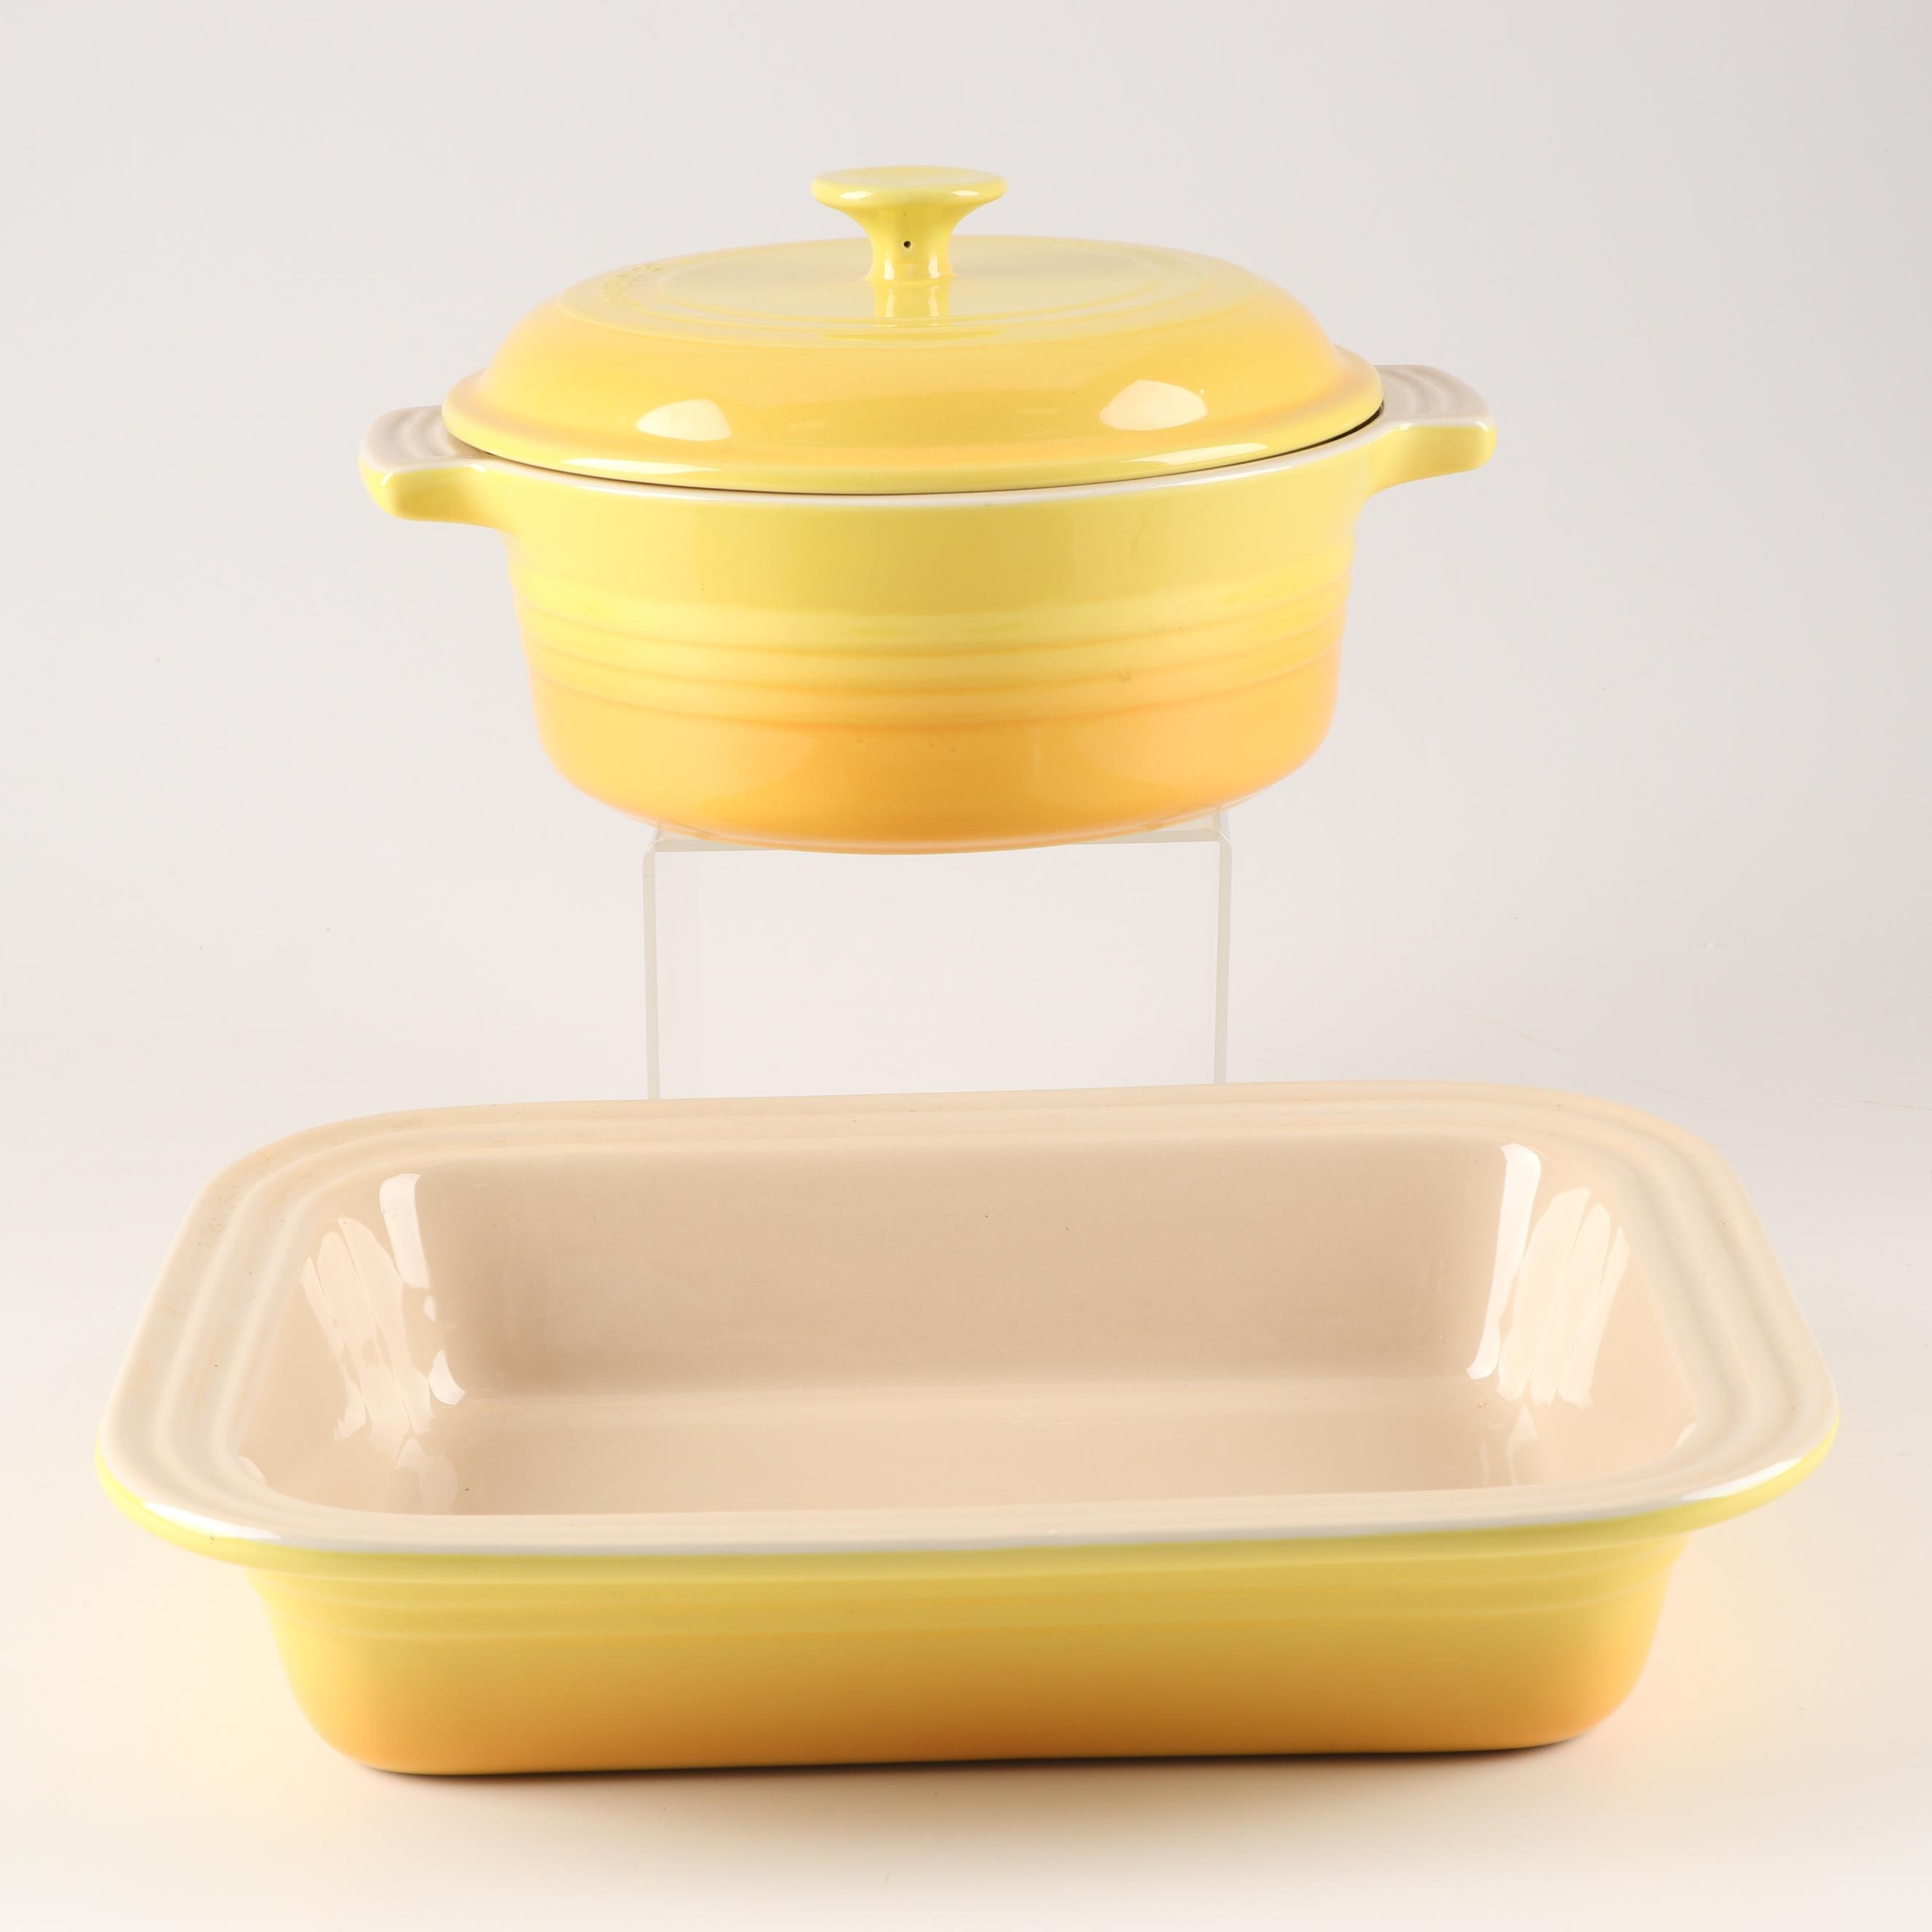 Le Creuset Roasting Pan and Casserole Dish